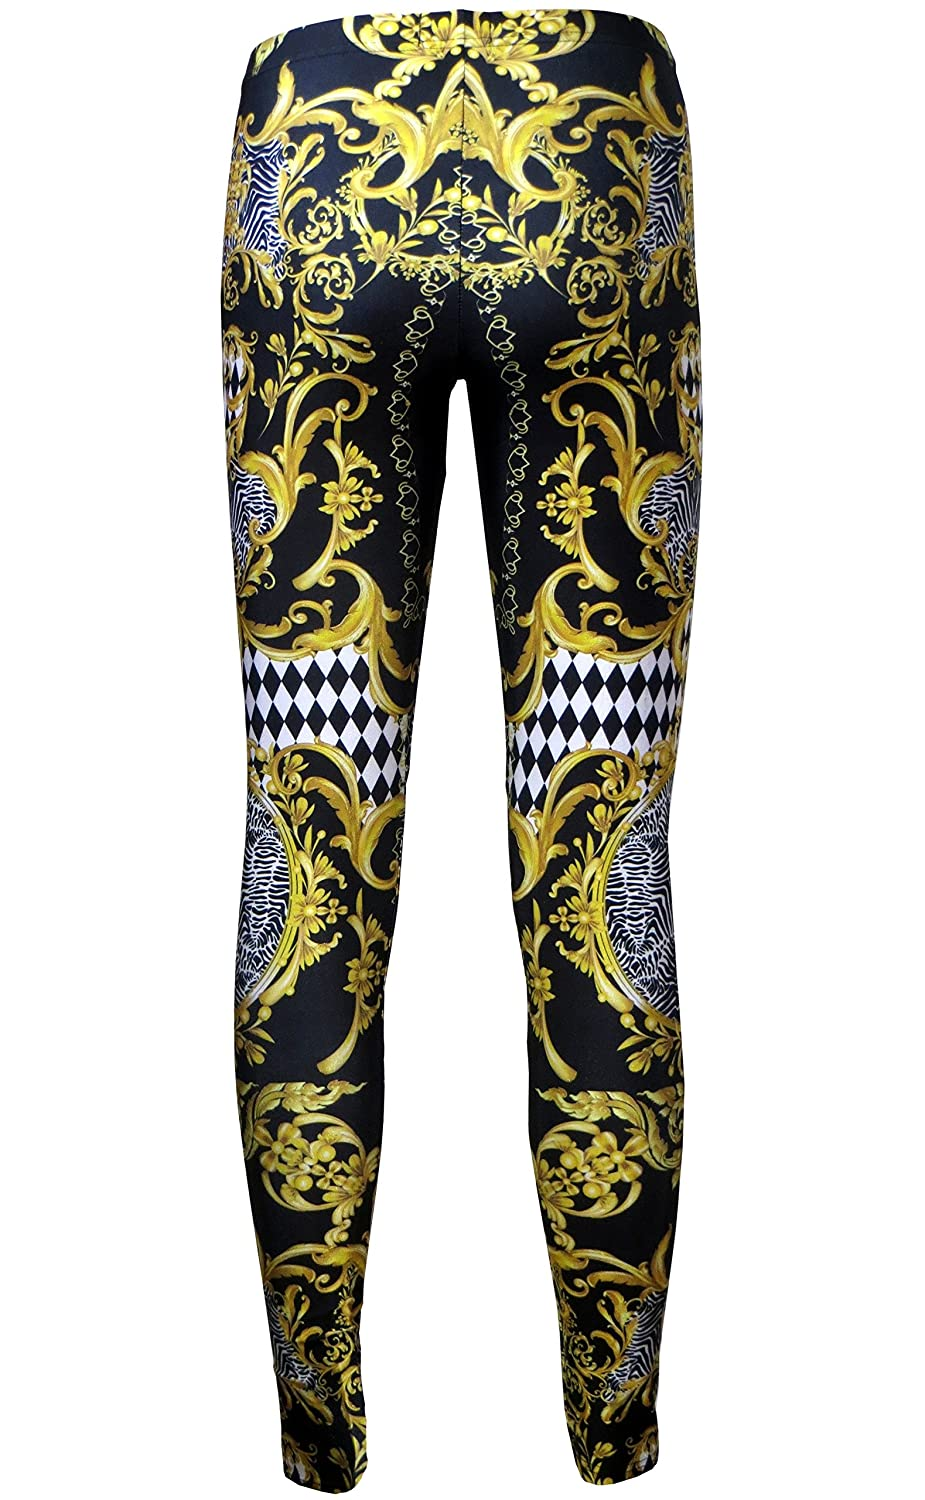 b503c15f22c5 Insanity Clothing Baroque Floral Damask Monochrome Zebra Harlequin Vintage  Block Print Leggings at Amazon Women s Clothing store